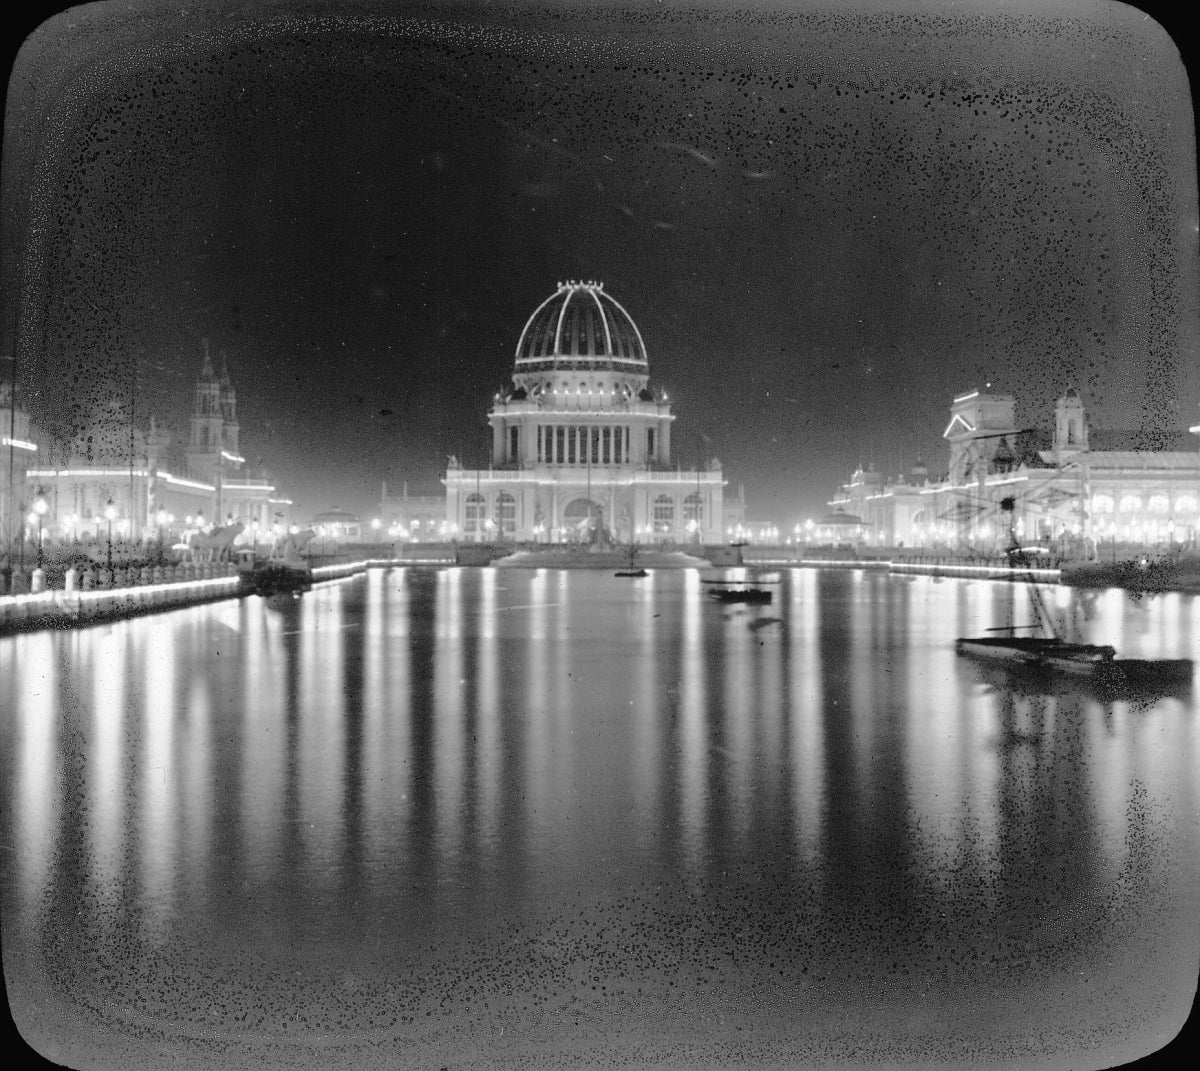 I Can't Wait to See Martin Scorsese's Version of the 1893 World's Fair